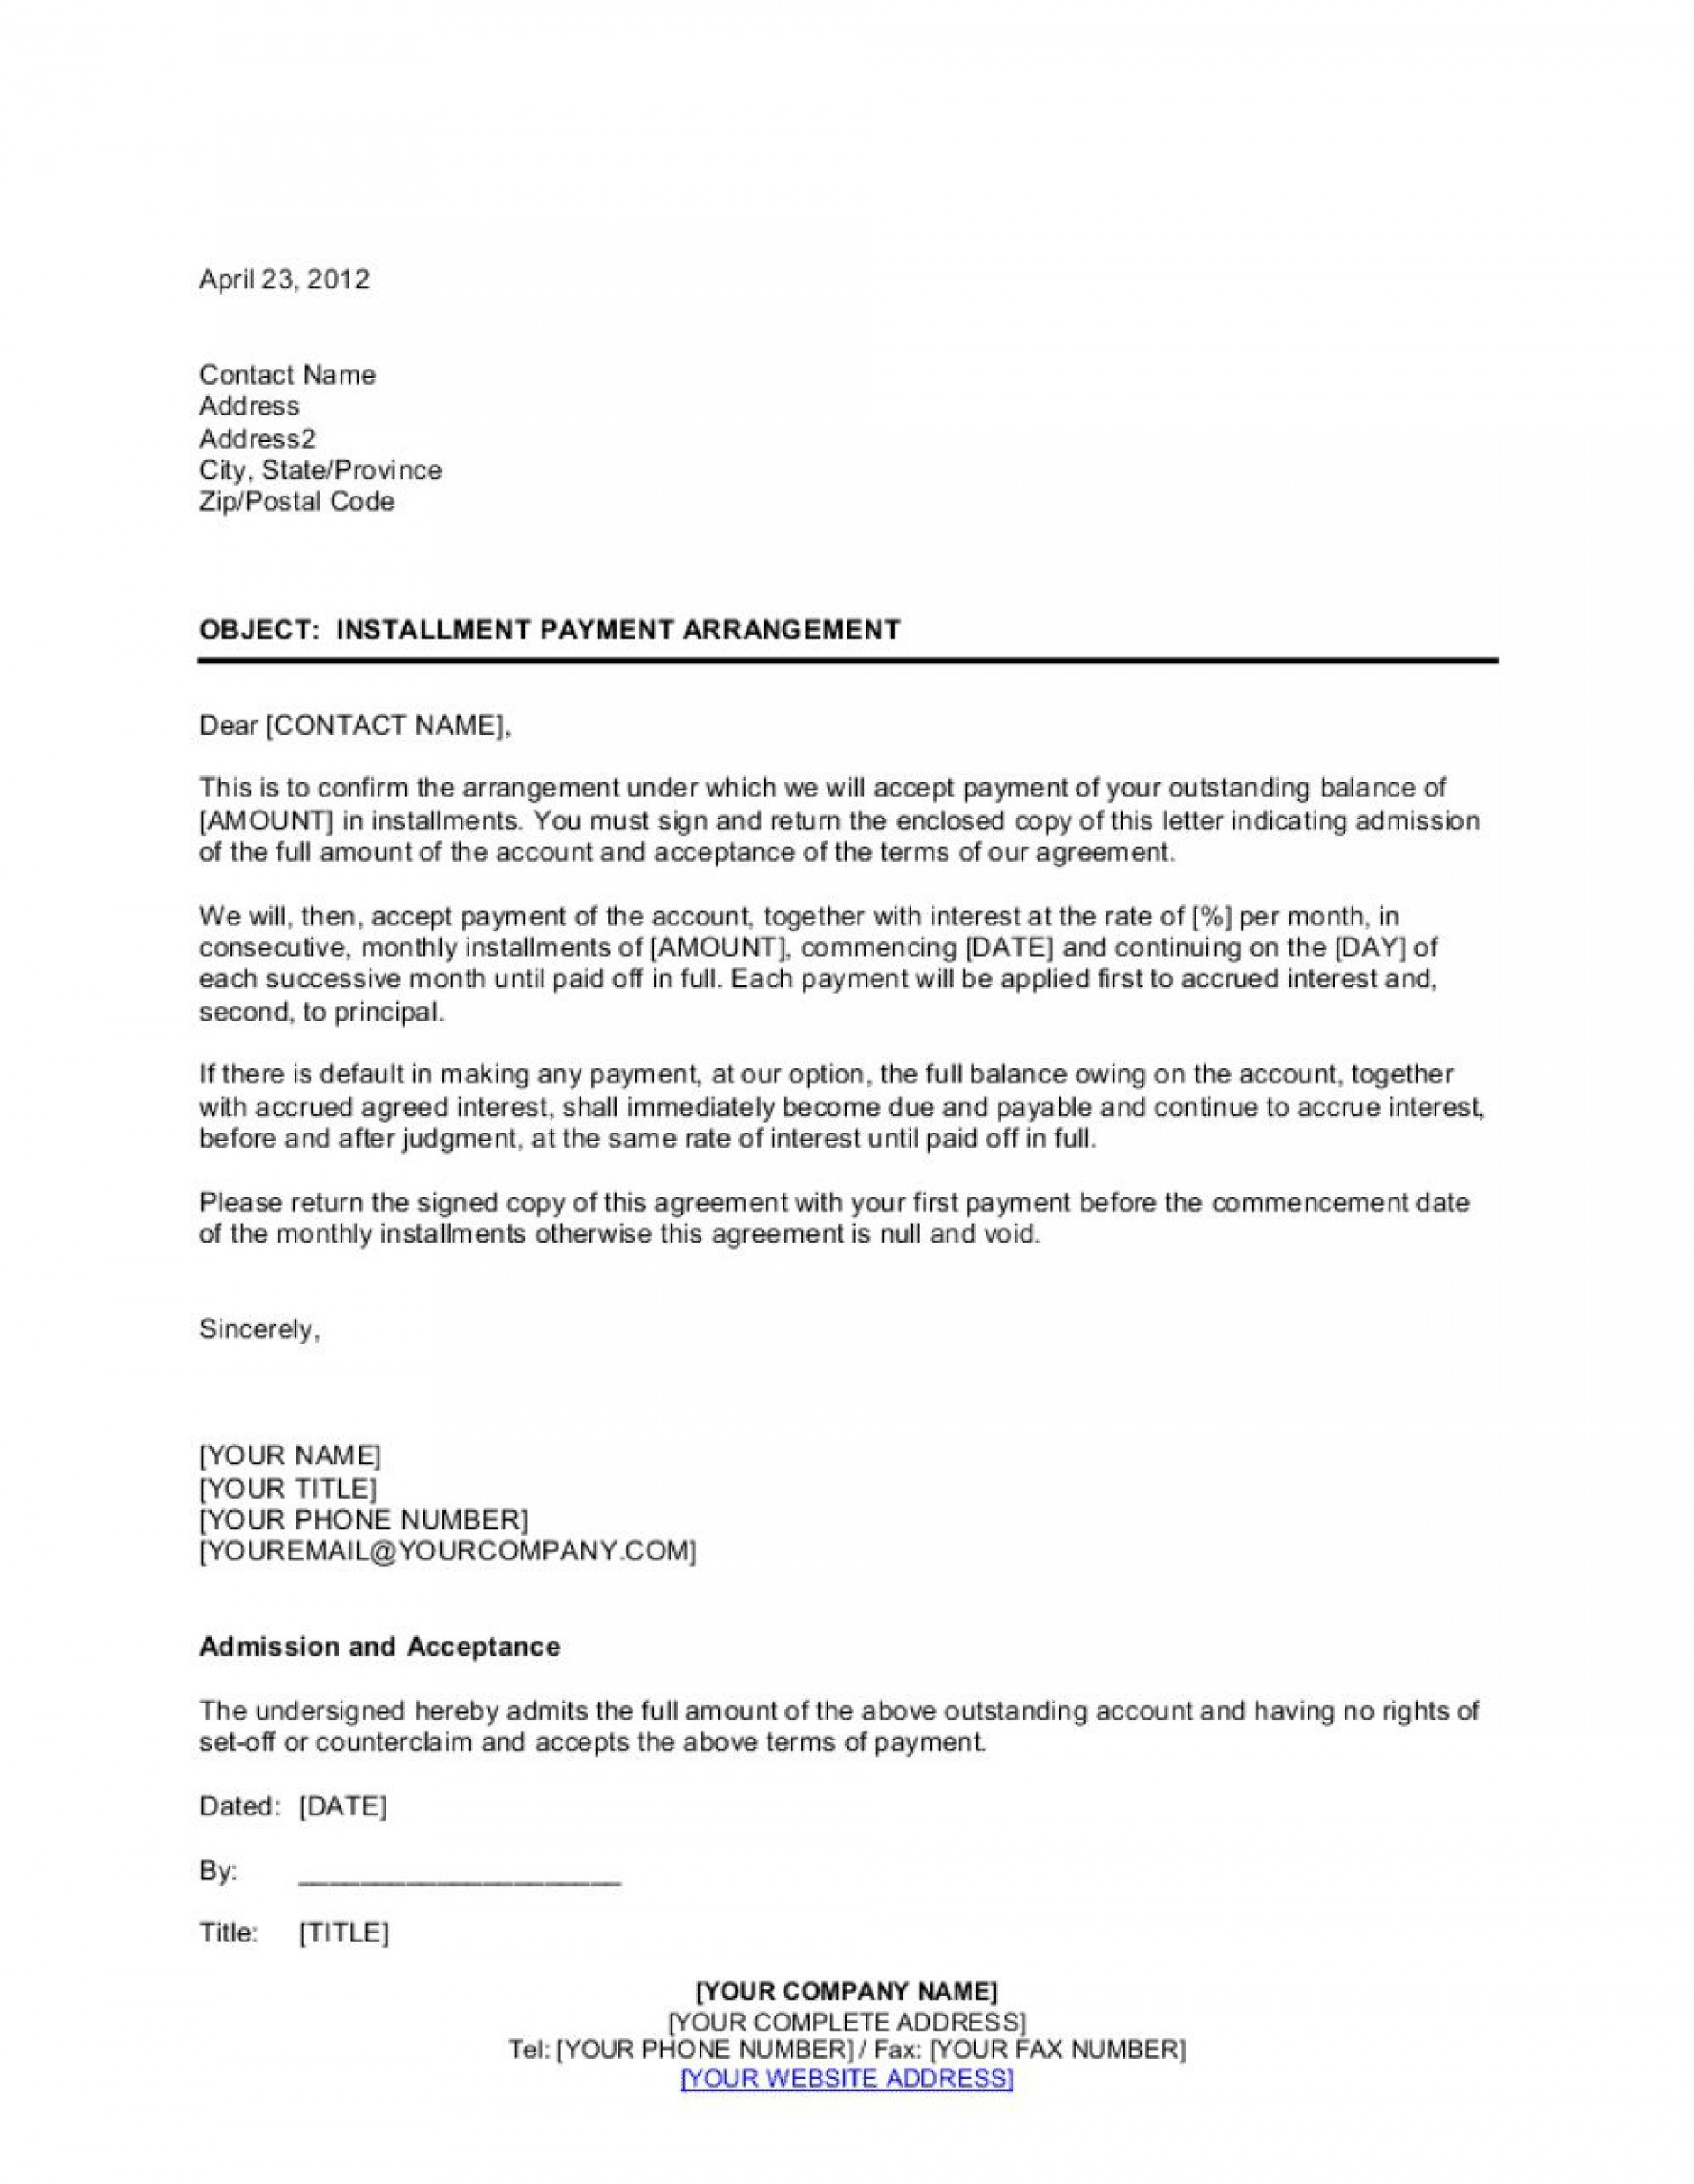 002 Simple Installment Payment Contract Template High Resolution  Agreement Free Car Word1920